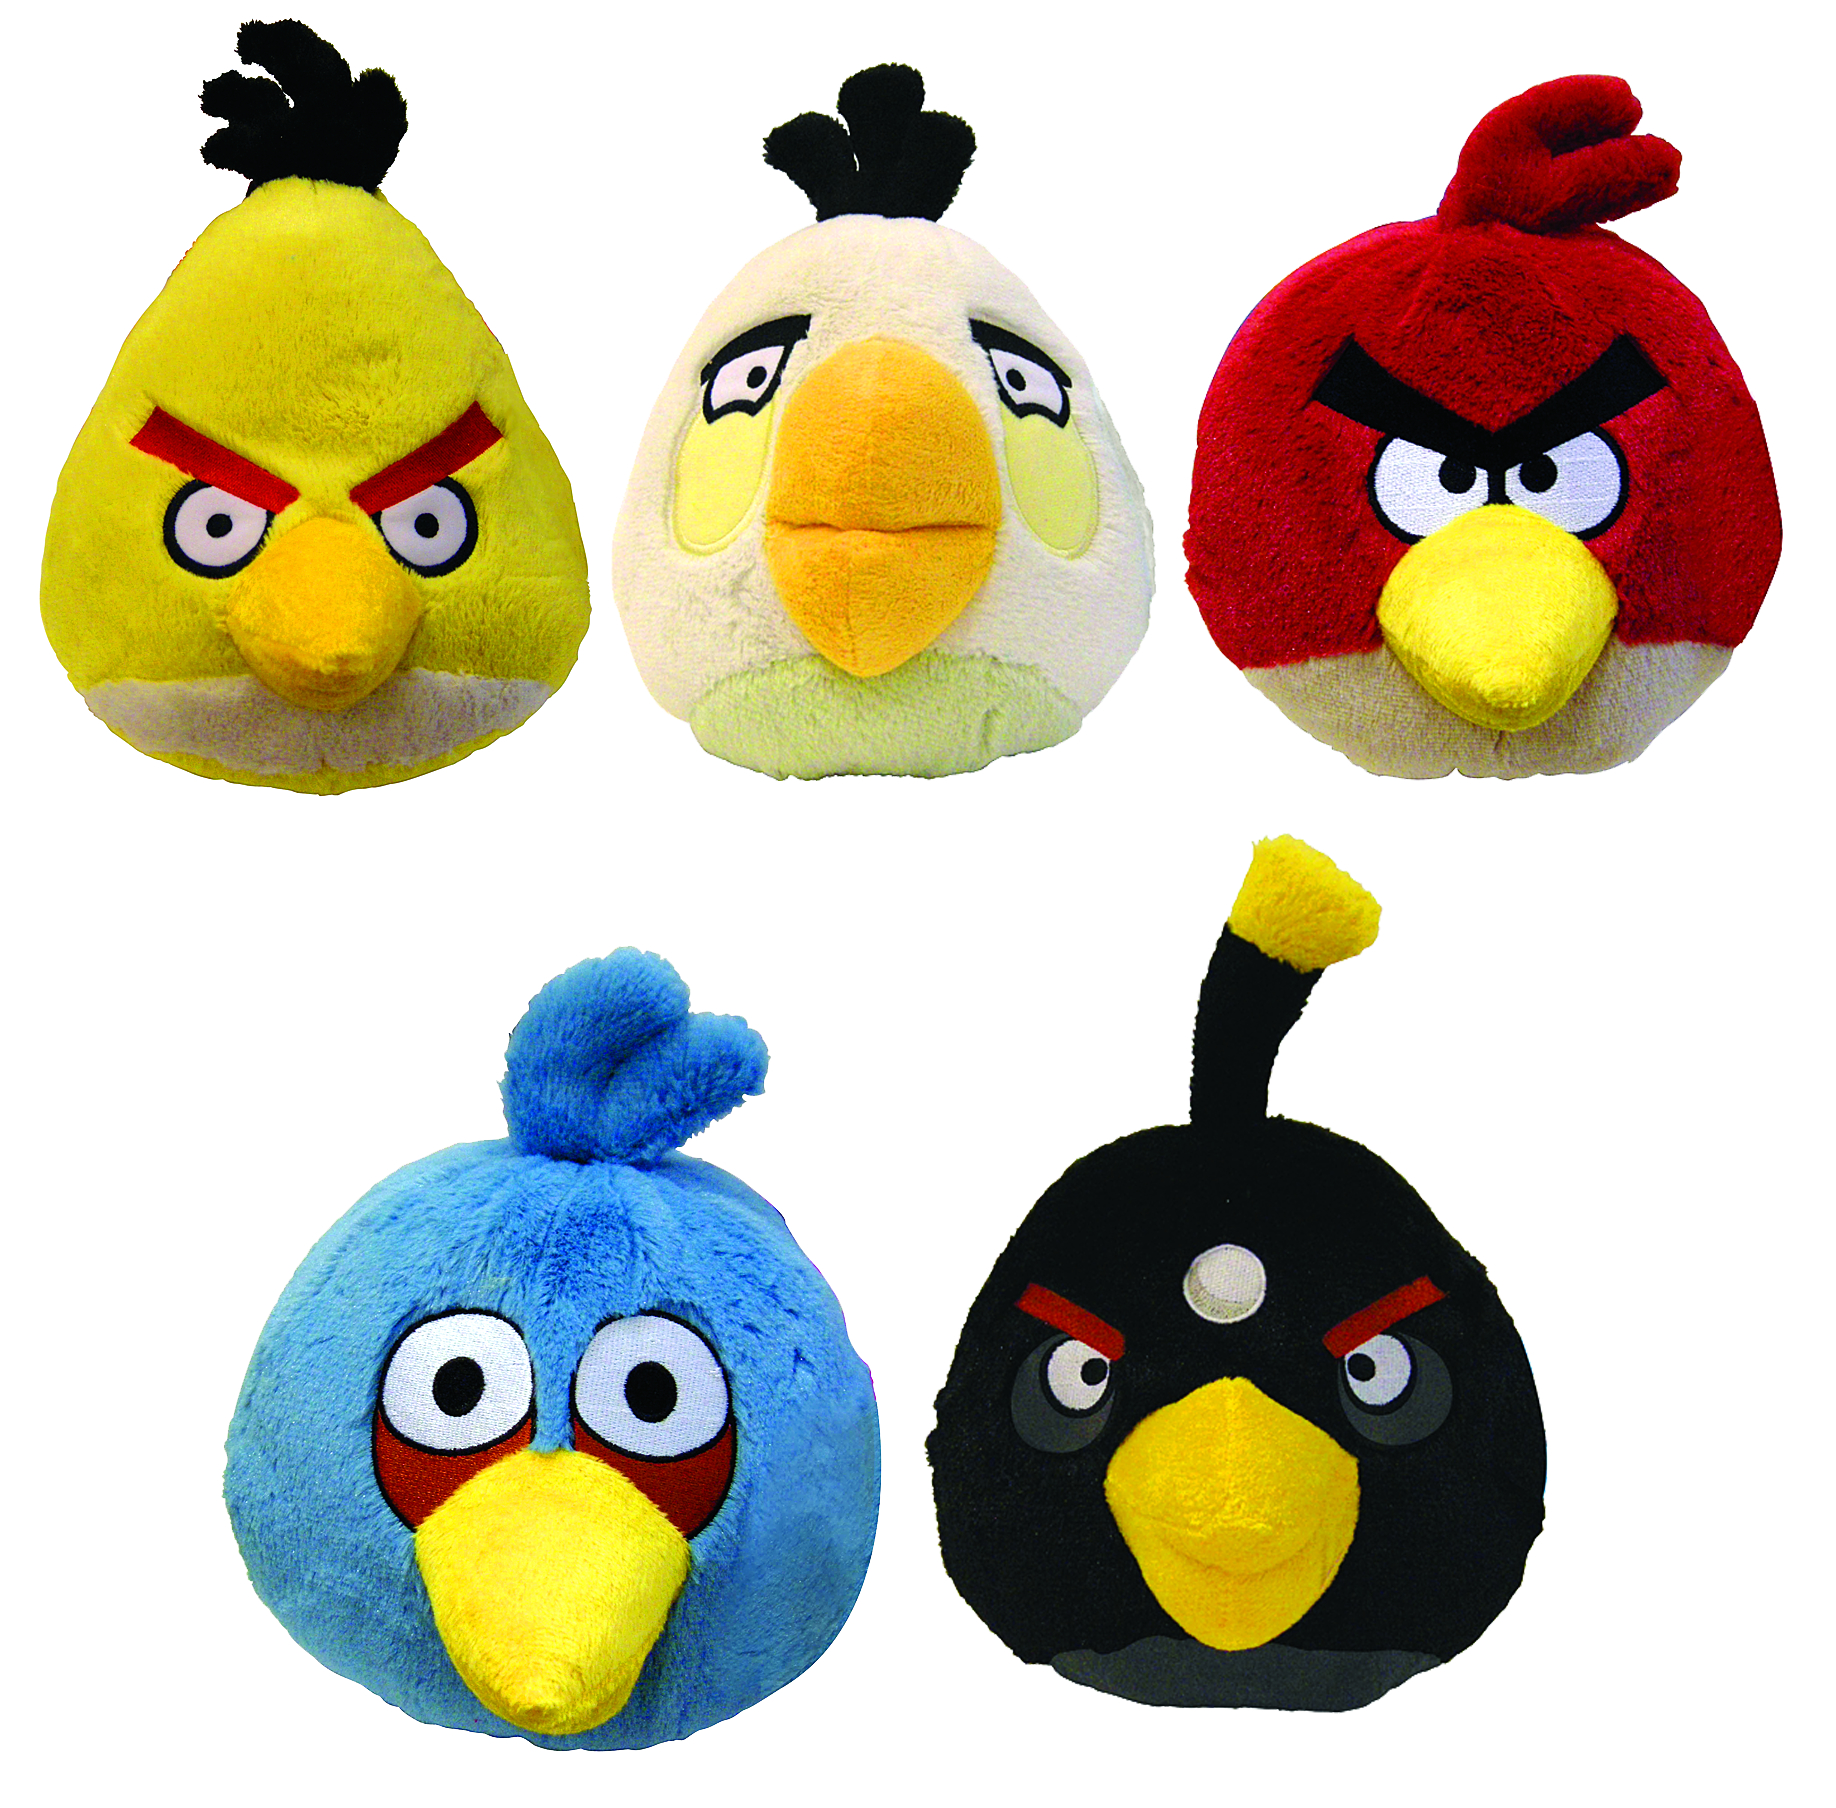 Angry Birds Toys With Sound : Apr angry birds in plush w sound asst previews